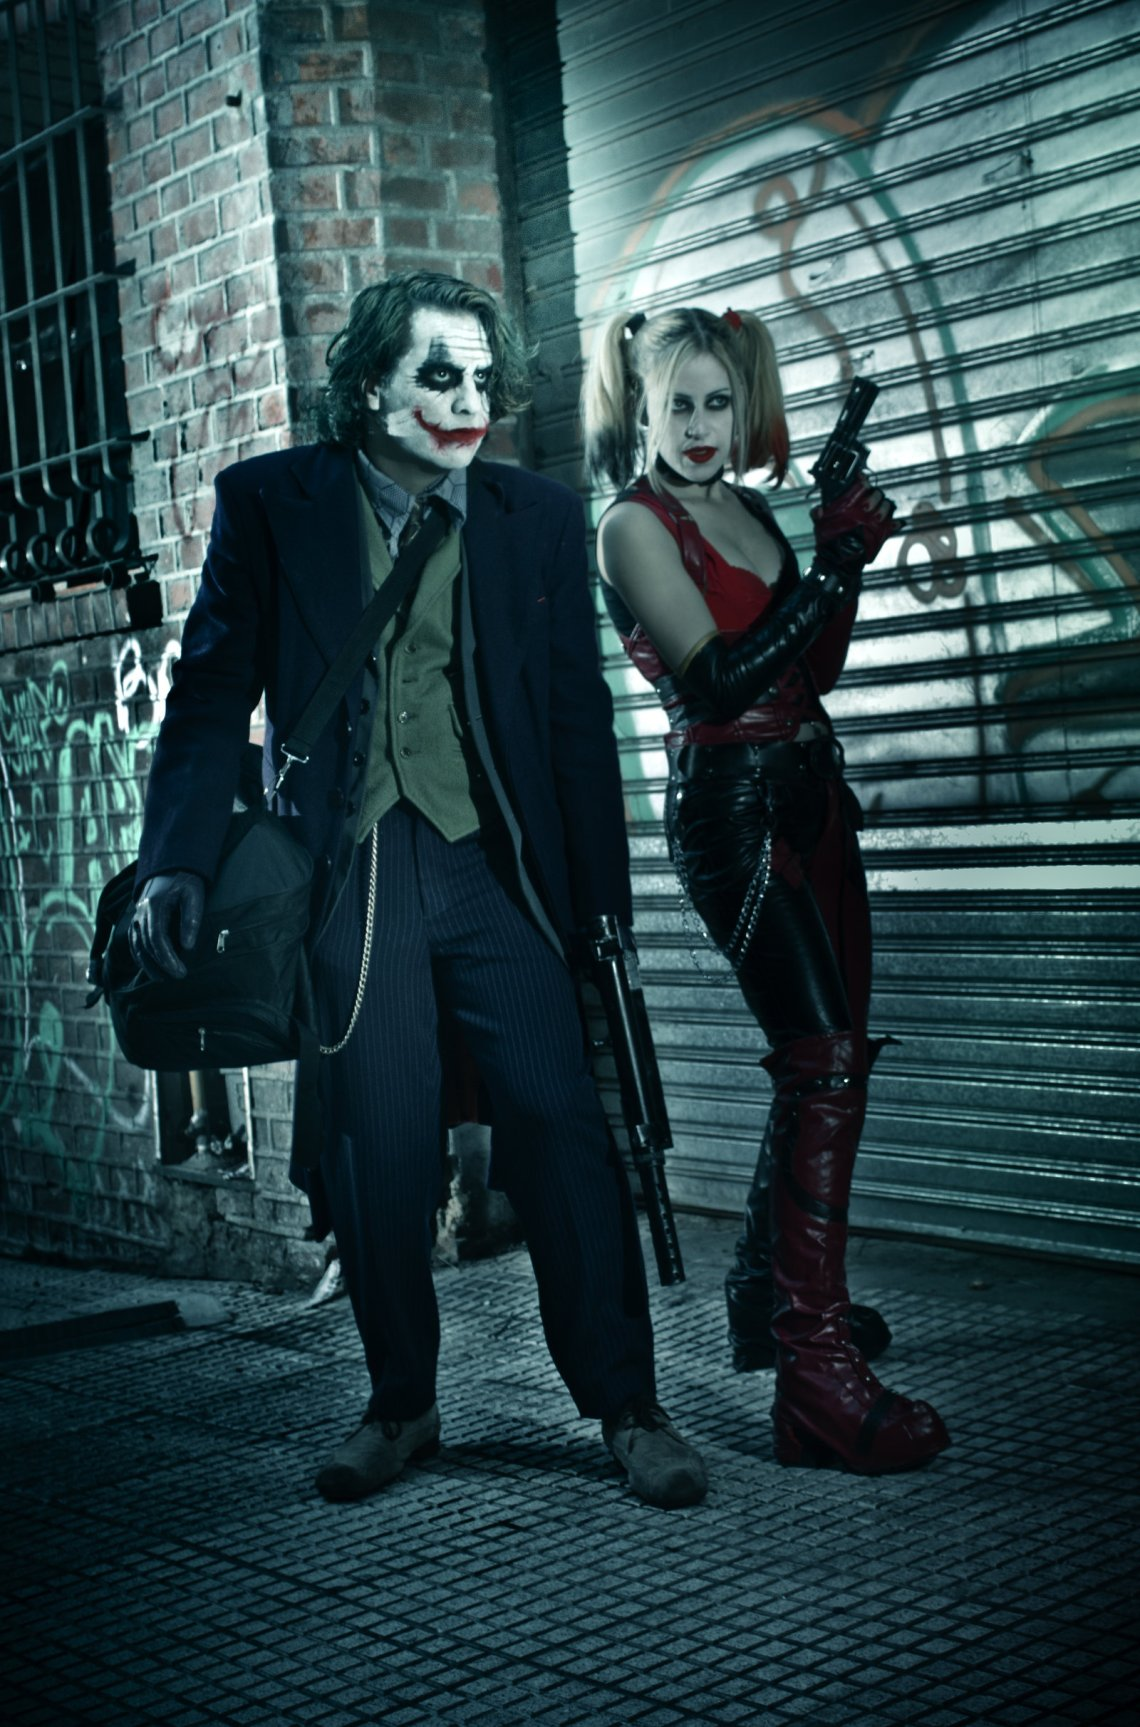 the_joker_and_harley_quinn_by_leanandjess-d7j9bwz